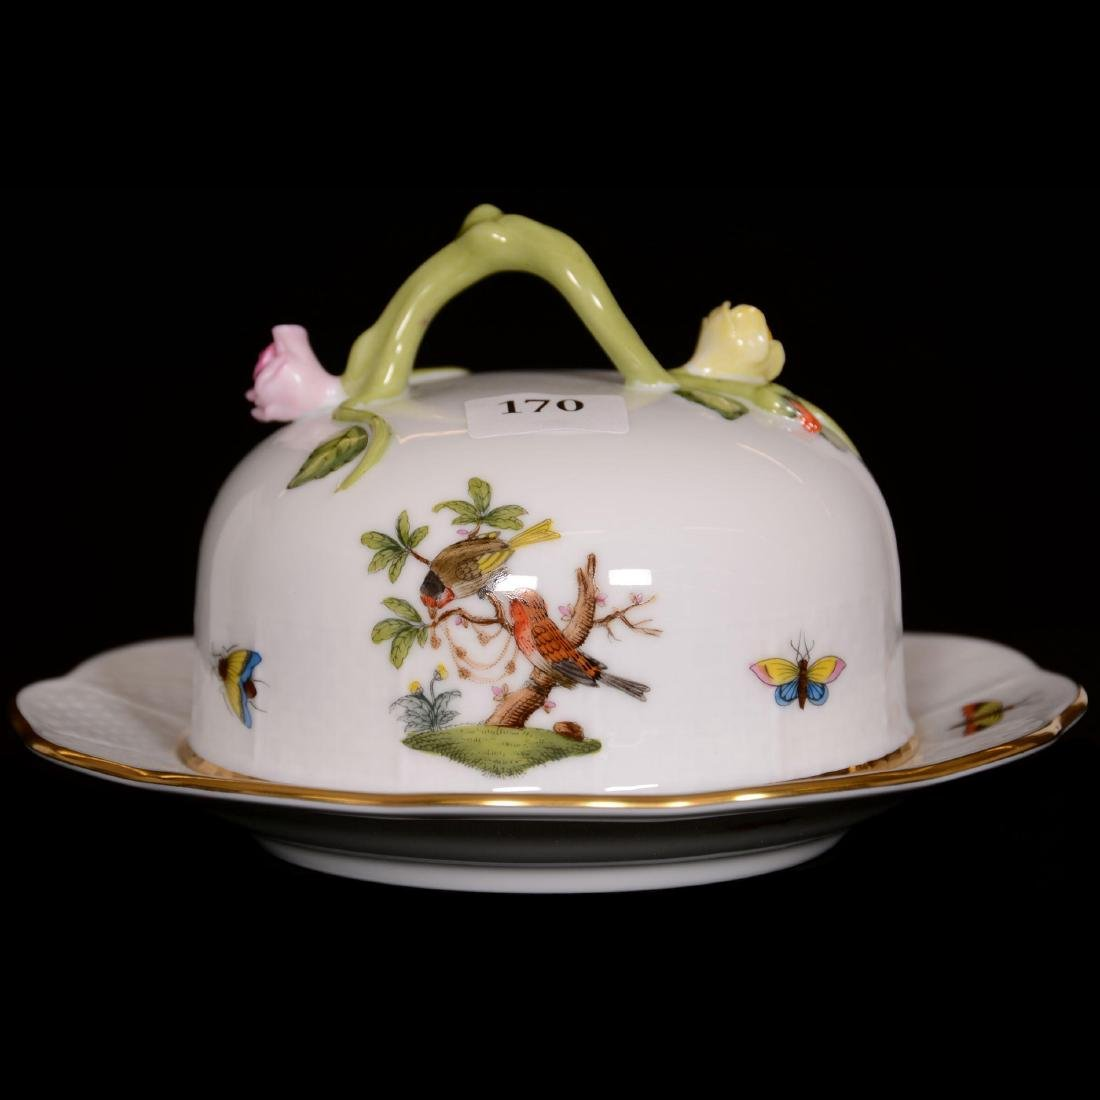 Herend Hungary Porcelain Hand Painted Covered Butterdis